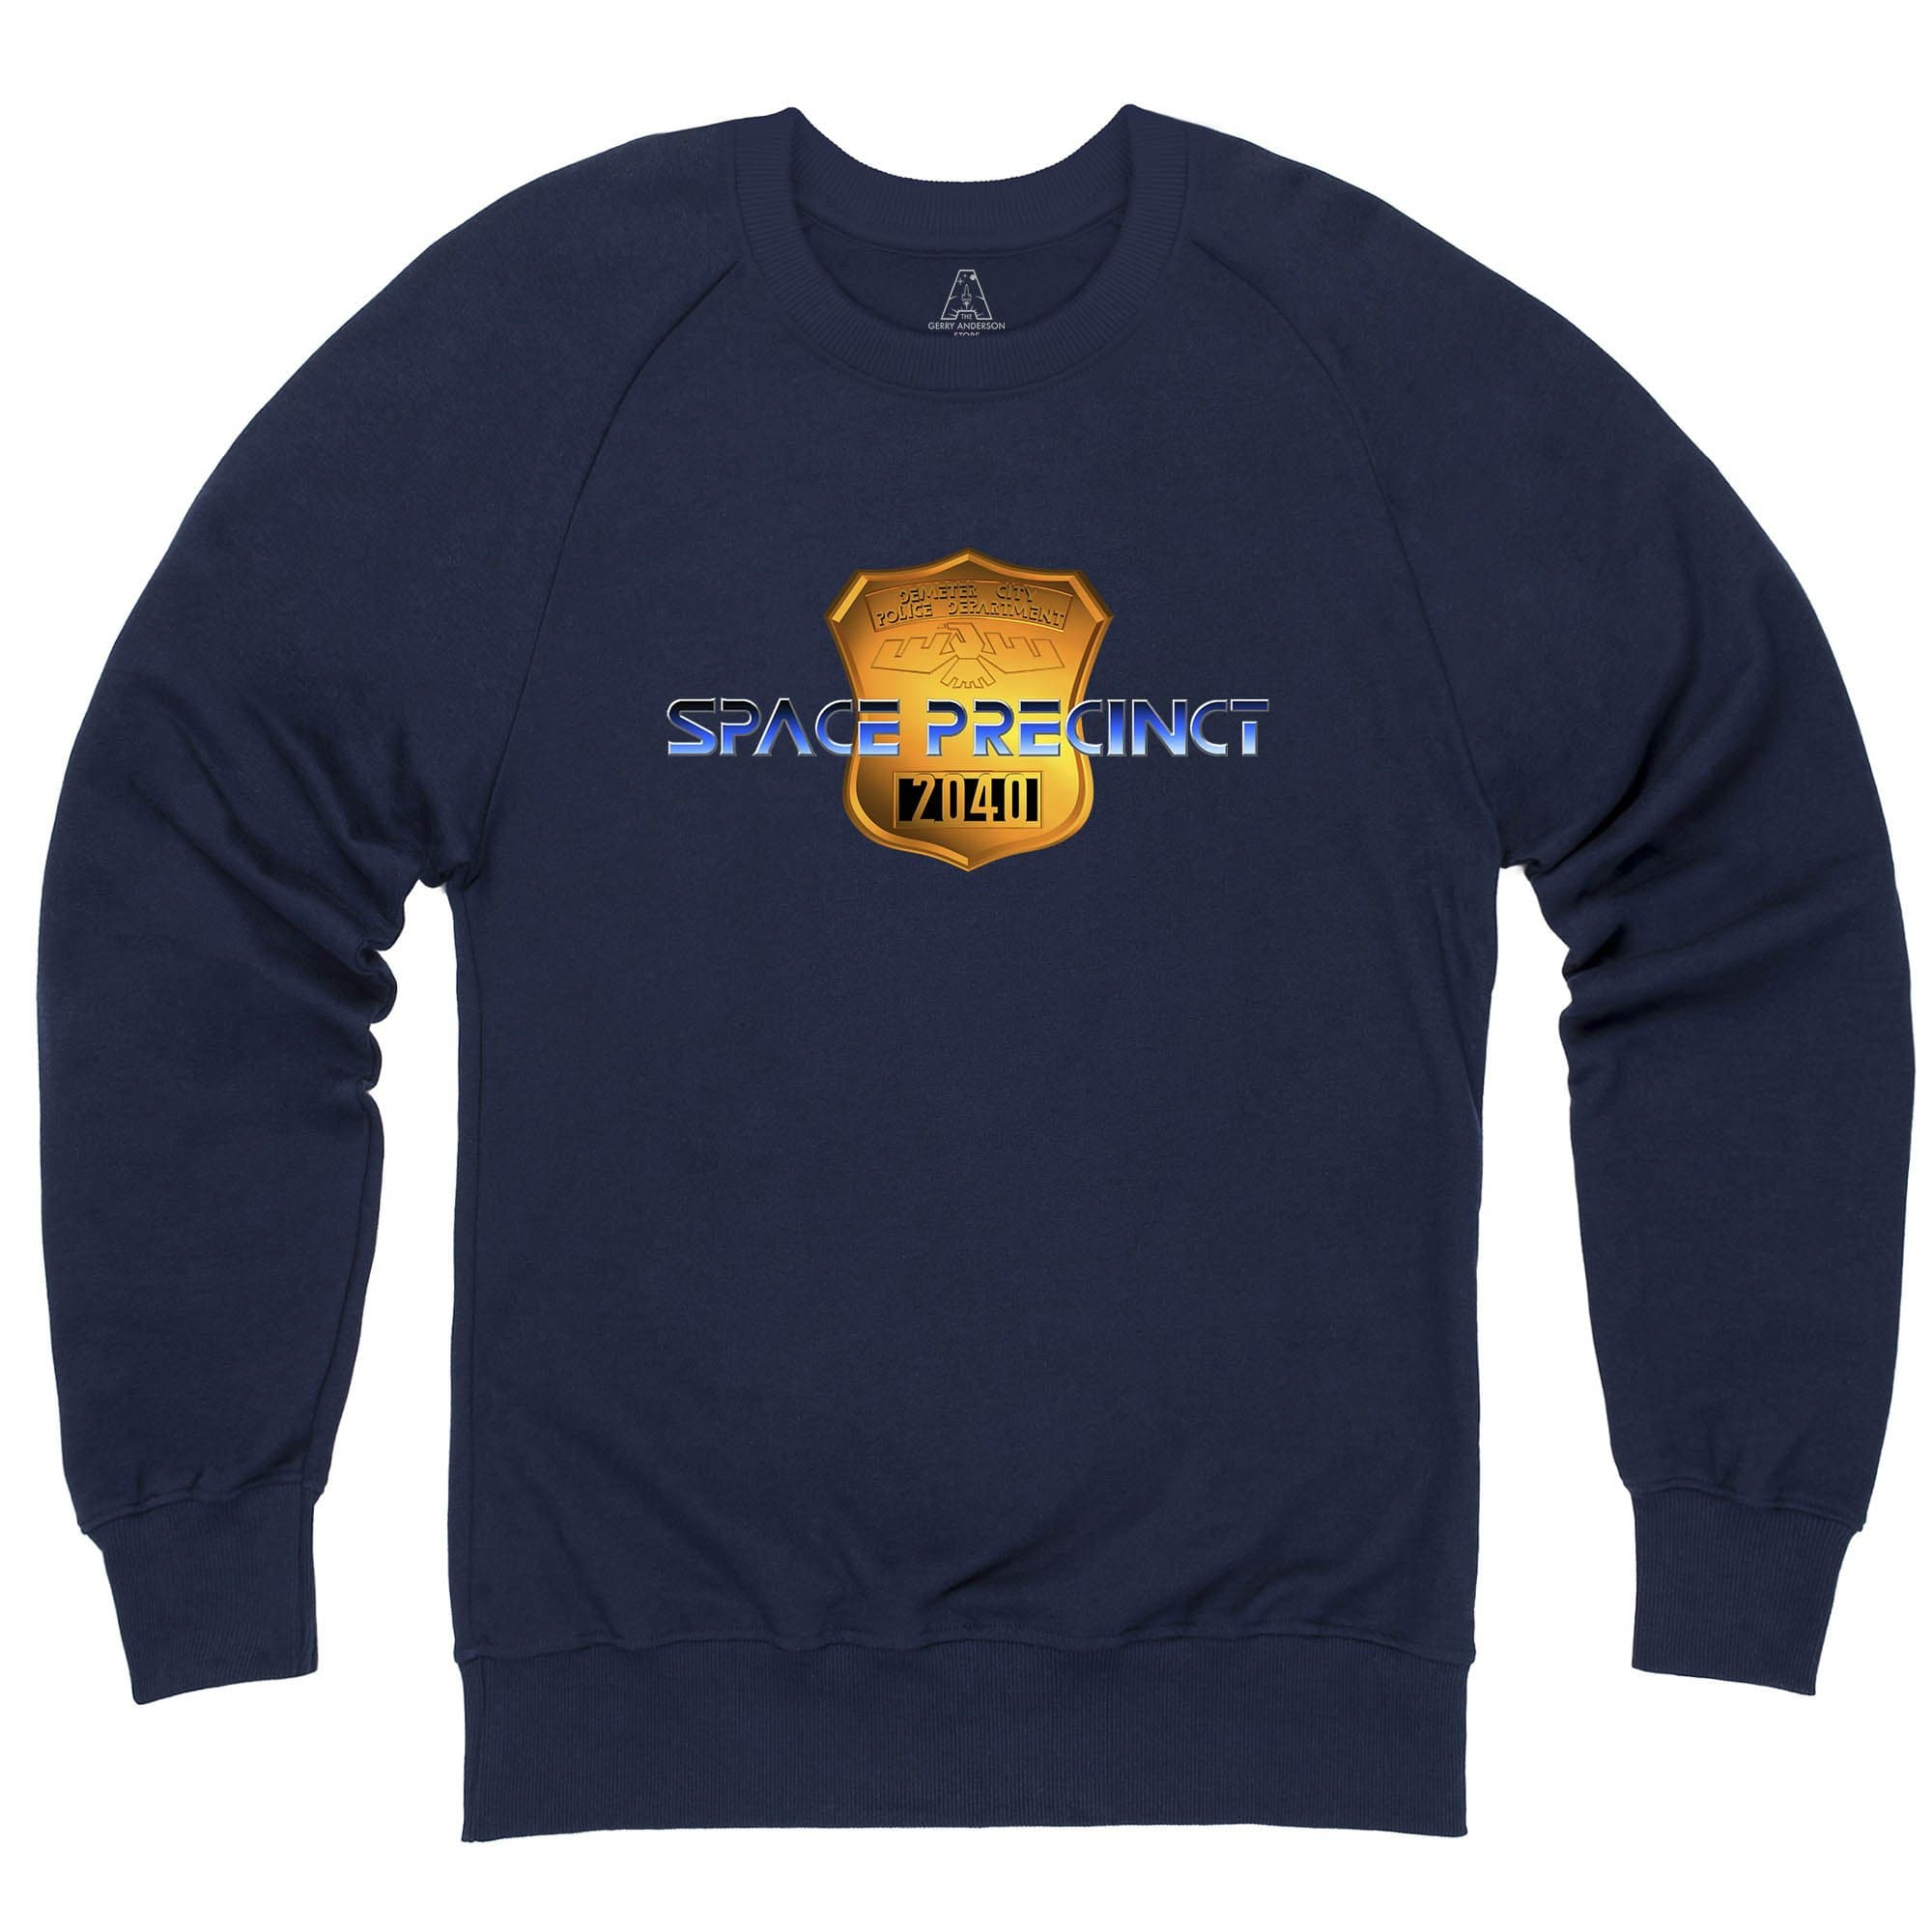 Space Precinct Logo Sweatshirt [Official & Exclusive] - The Gerry Anderson Store